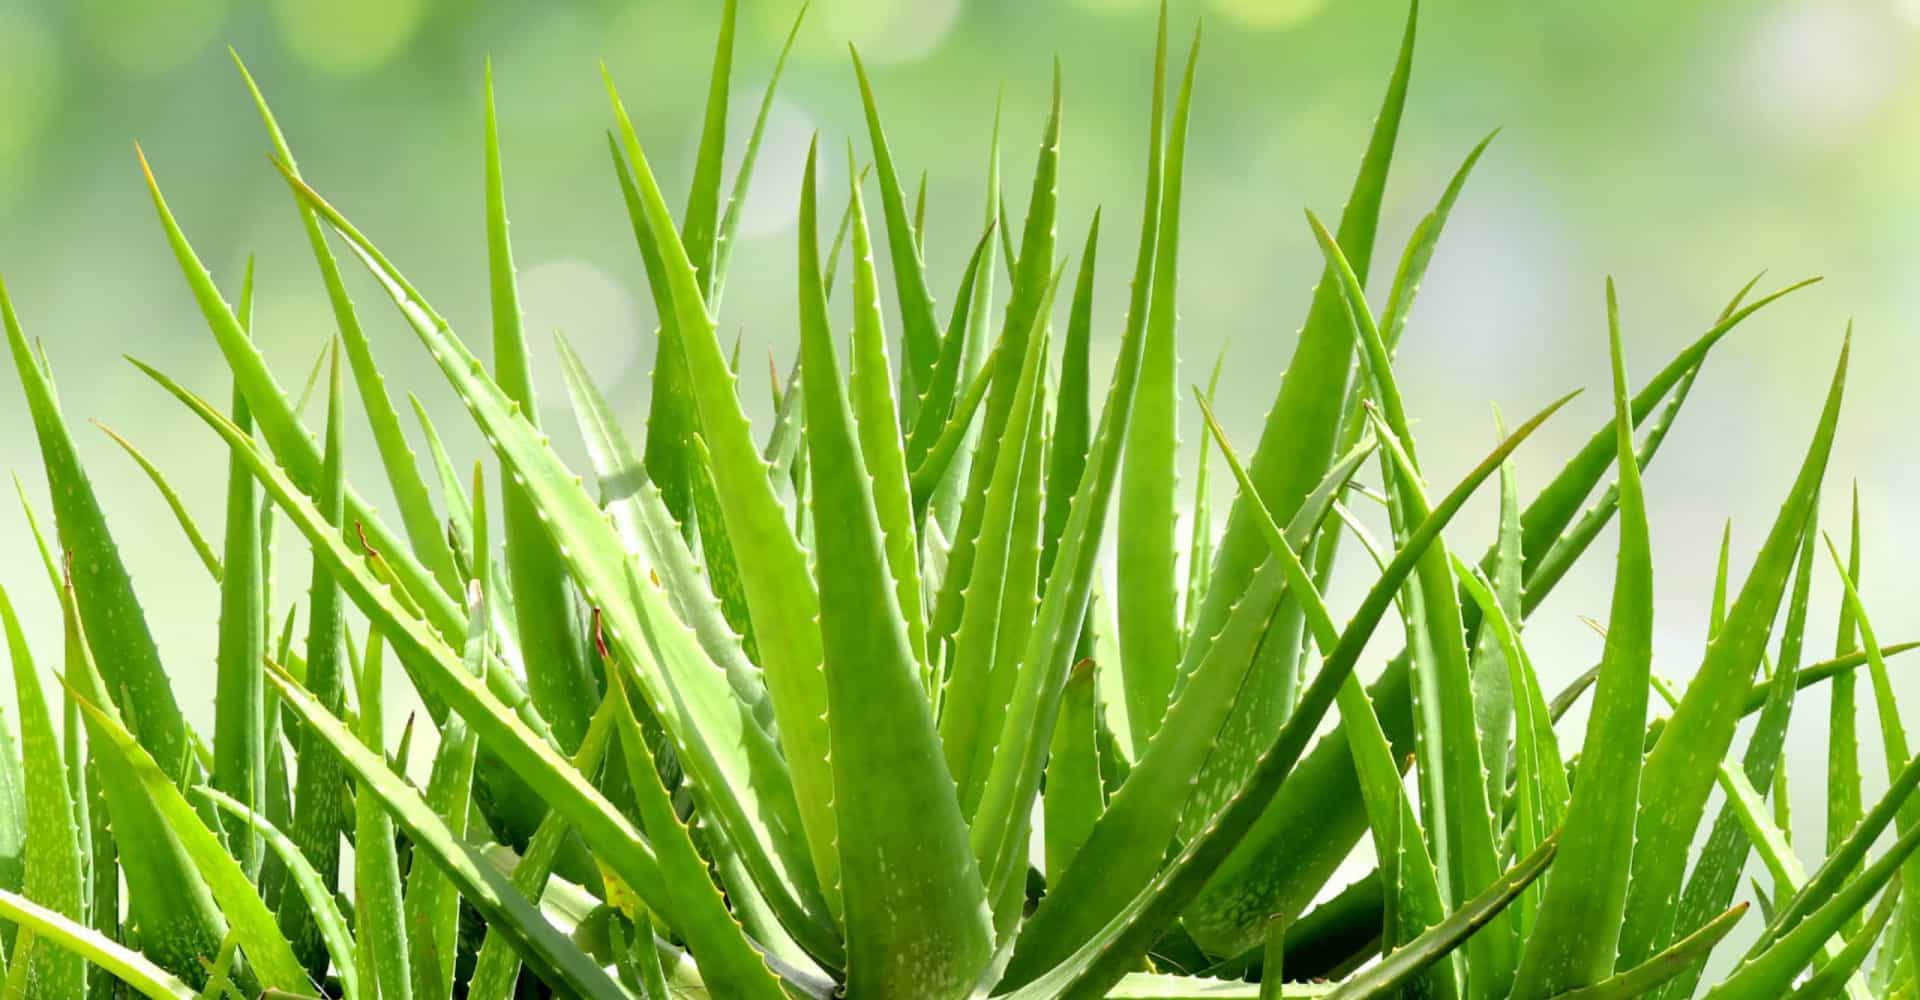 The amazing healing properties of aloe vera